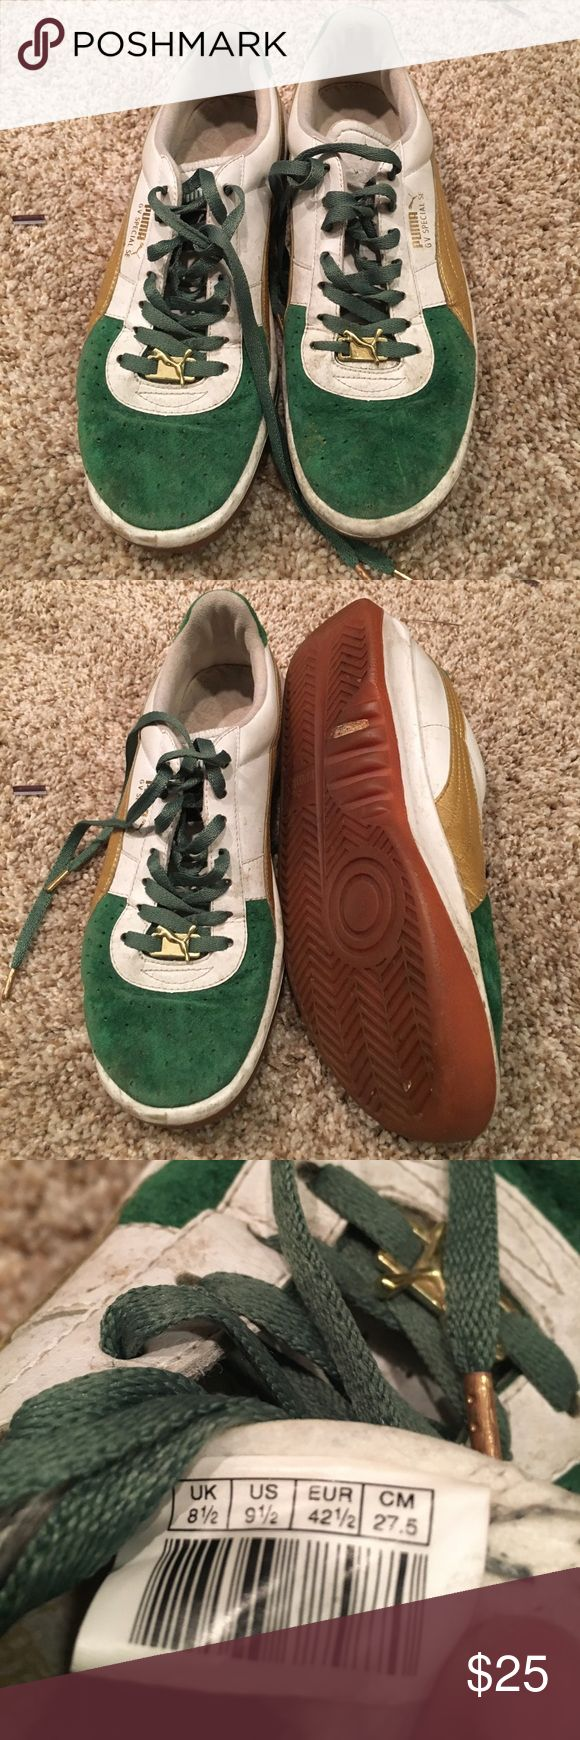 Men's green Puma shoes Green GV special SE Puma shoes for men. Preowned condition size us 9.5 Puma Shoes Sneakers